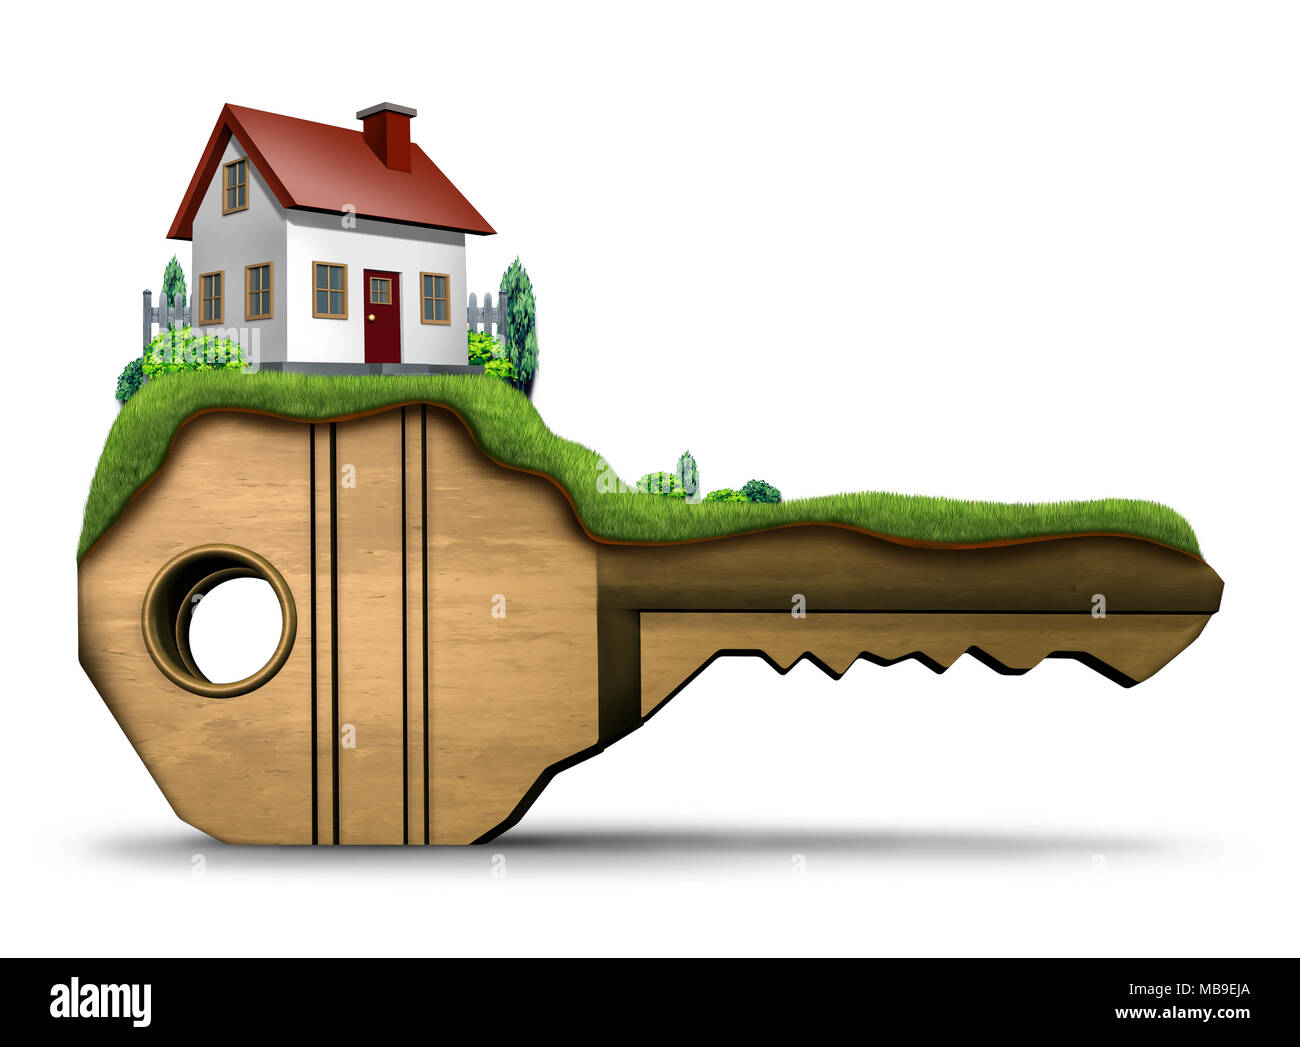 Real estate key family home symbol and house security concept as a 3D illustration on a white background. - Stock Image